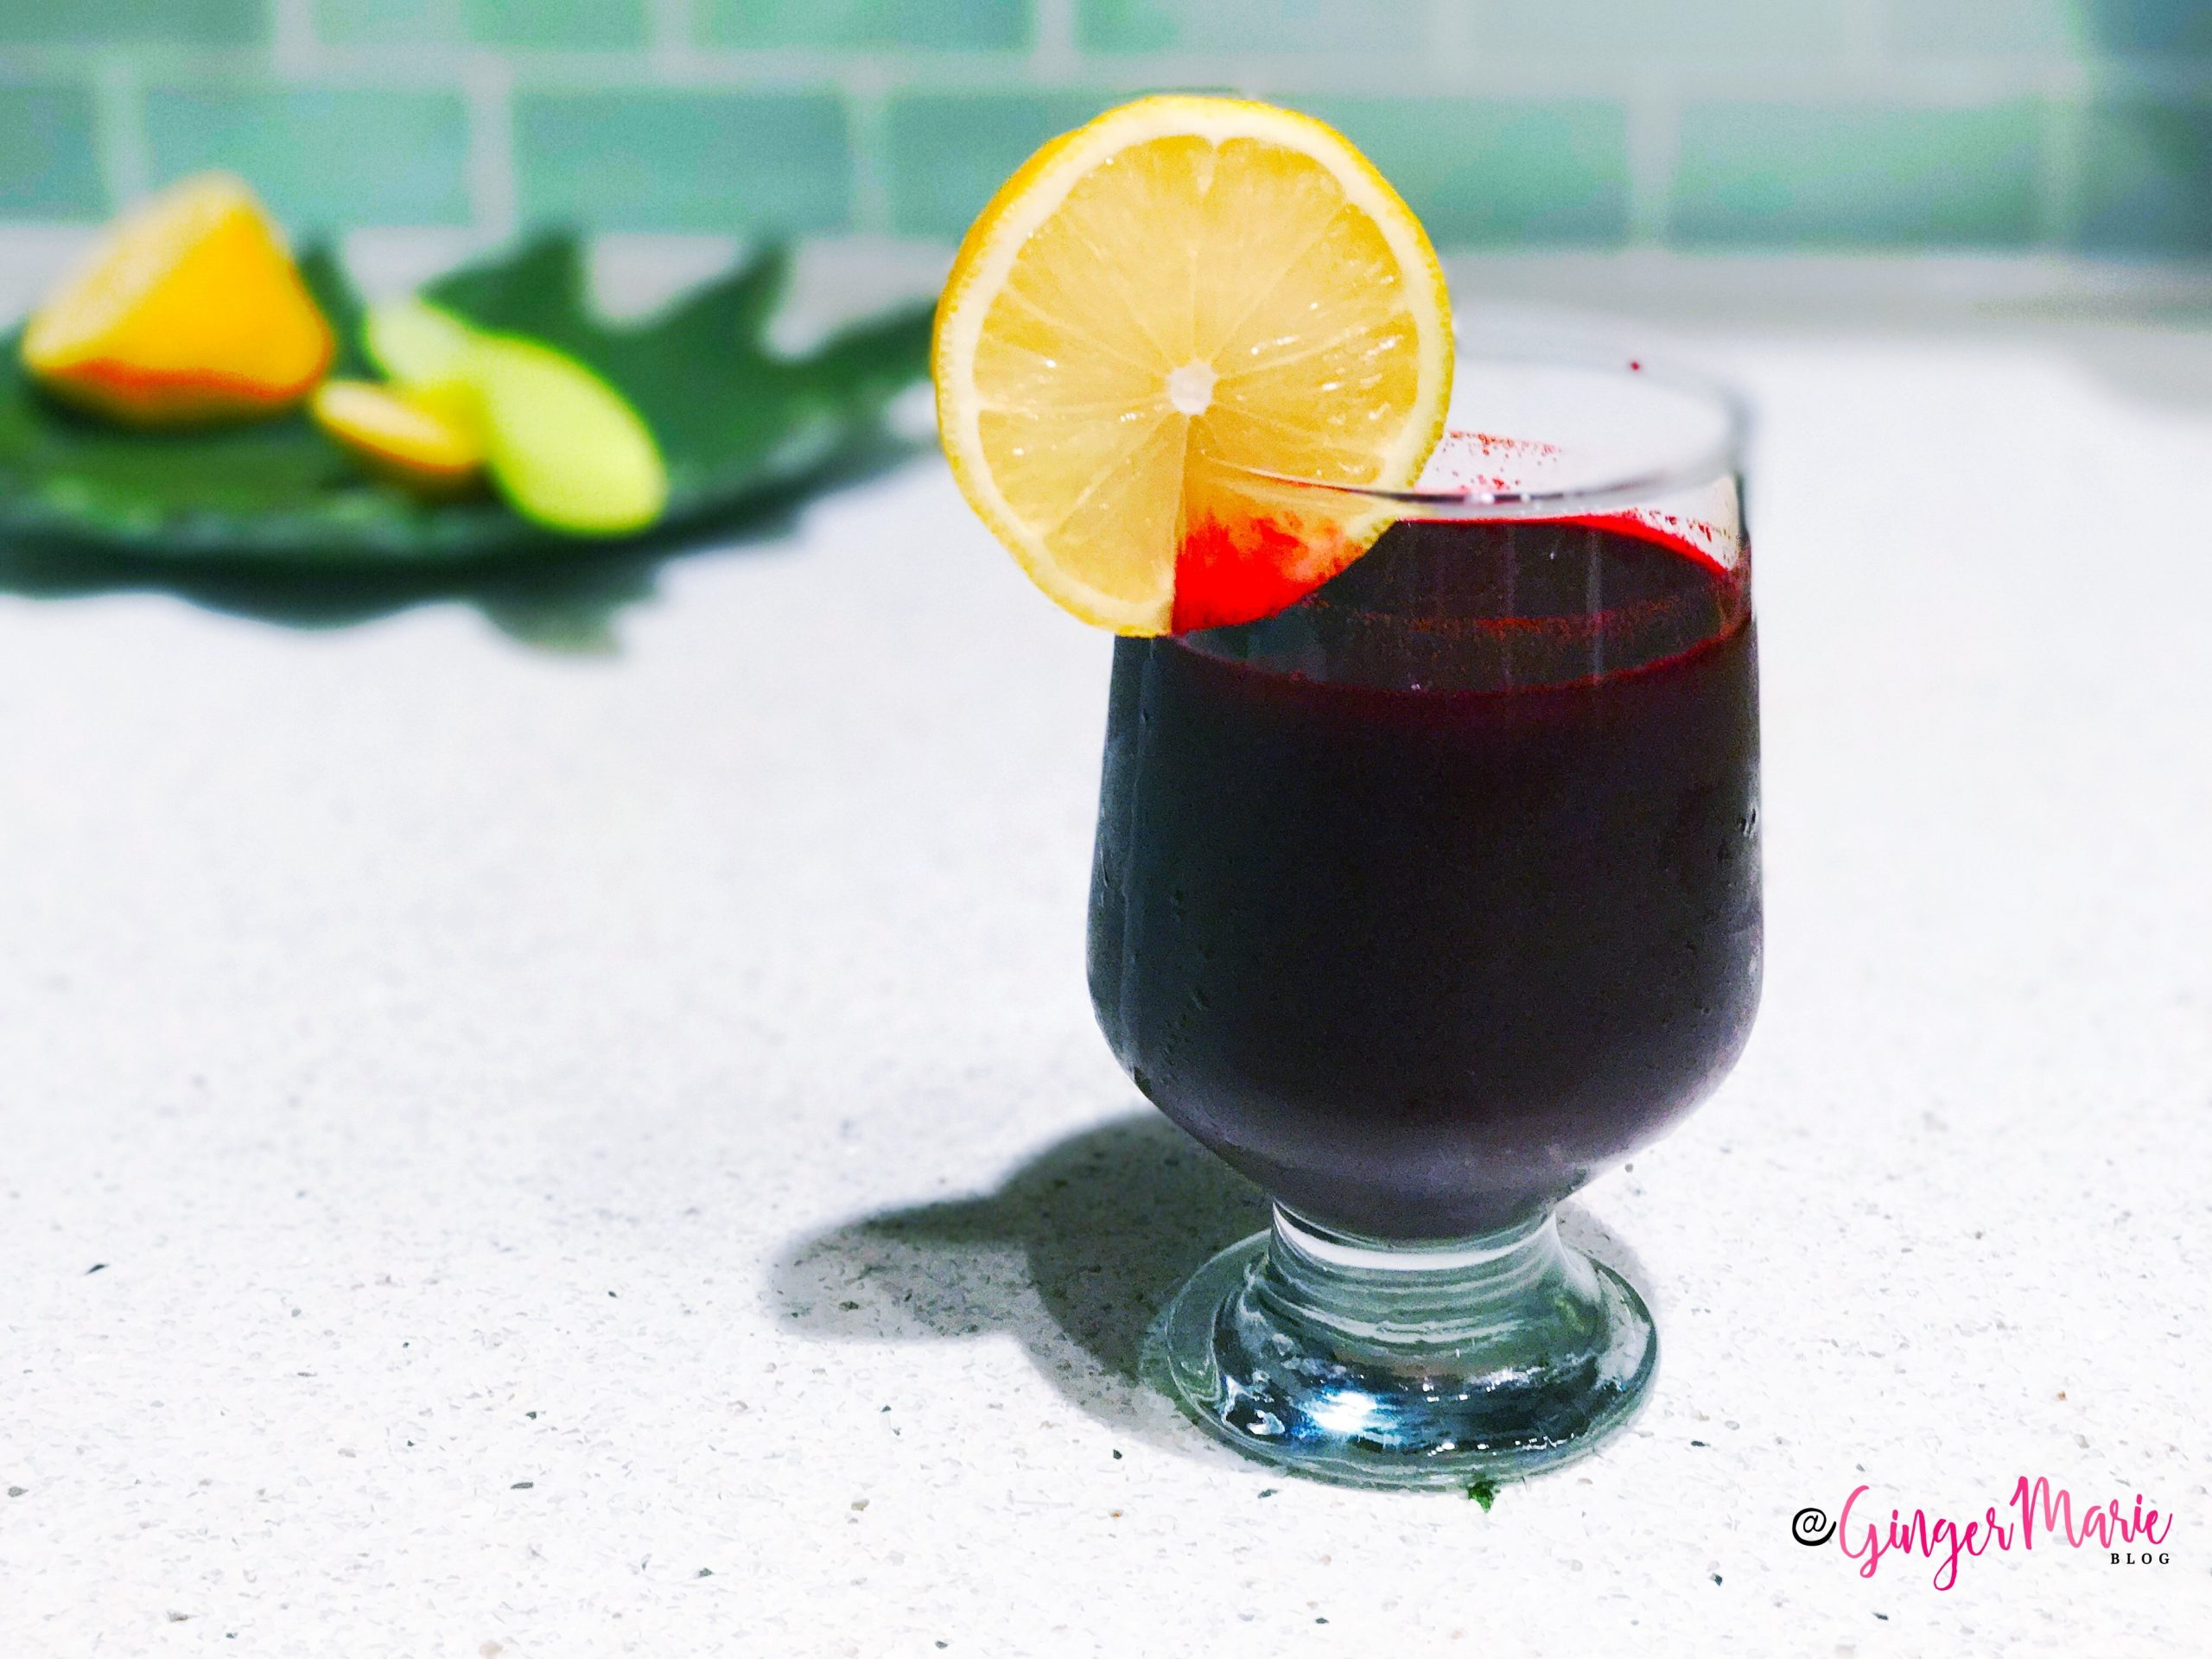 You Have To Try This Pear Apple Beet Juice | www.thegingermarieblog.com